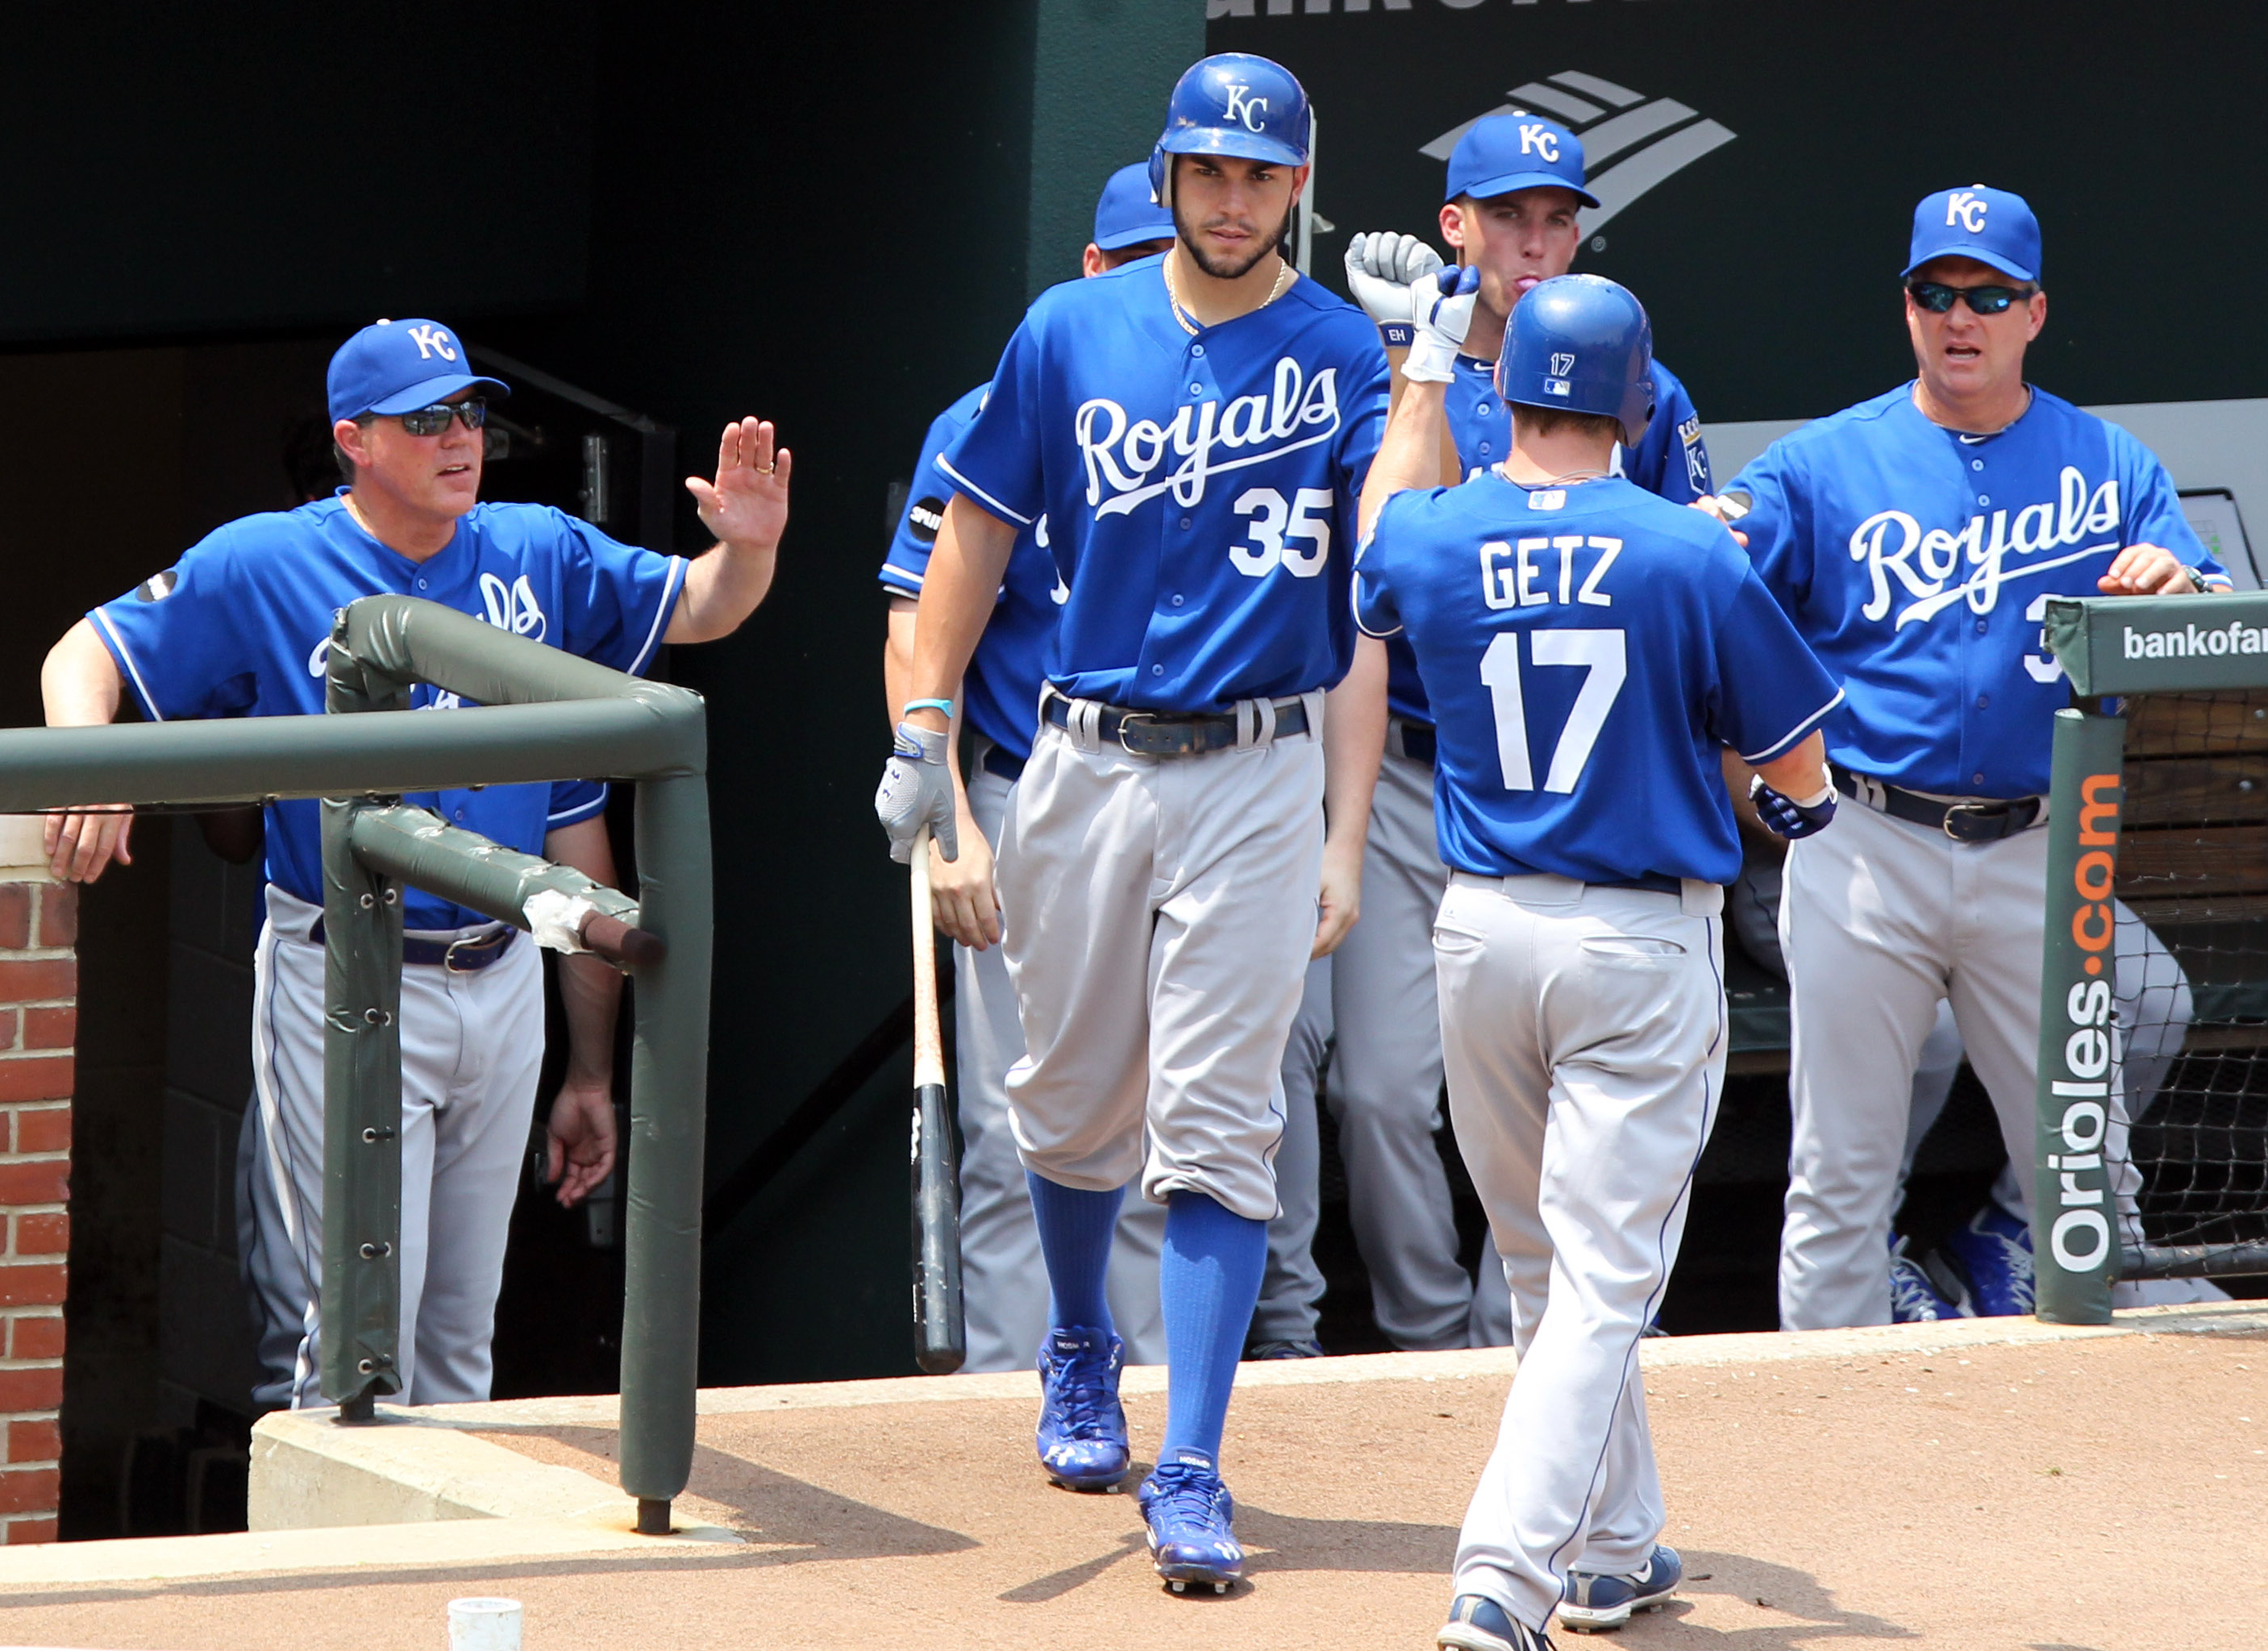 Kansas City Royals: Stop lying about abortion